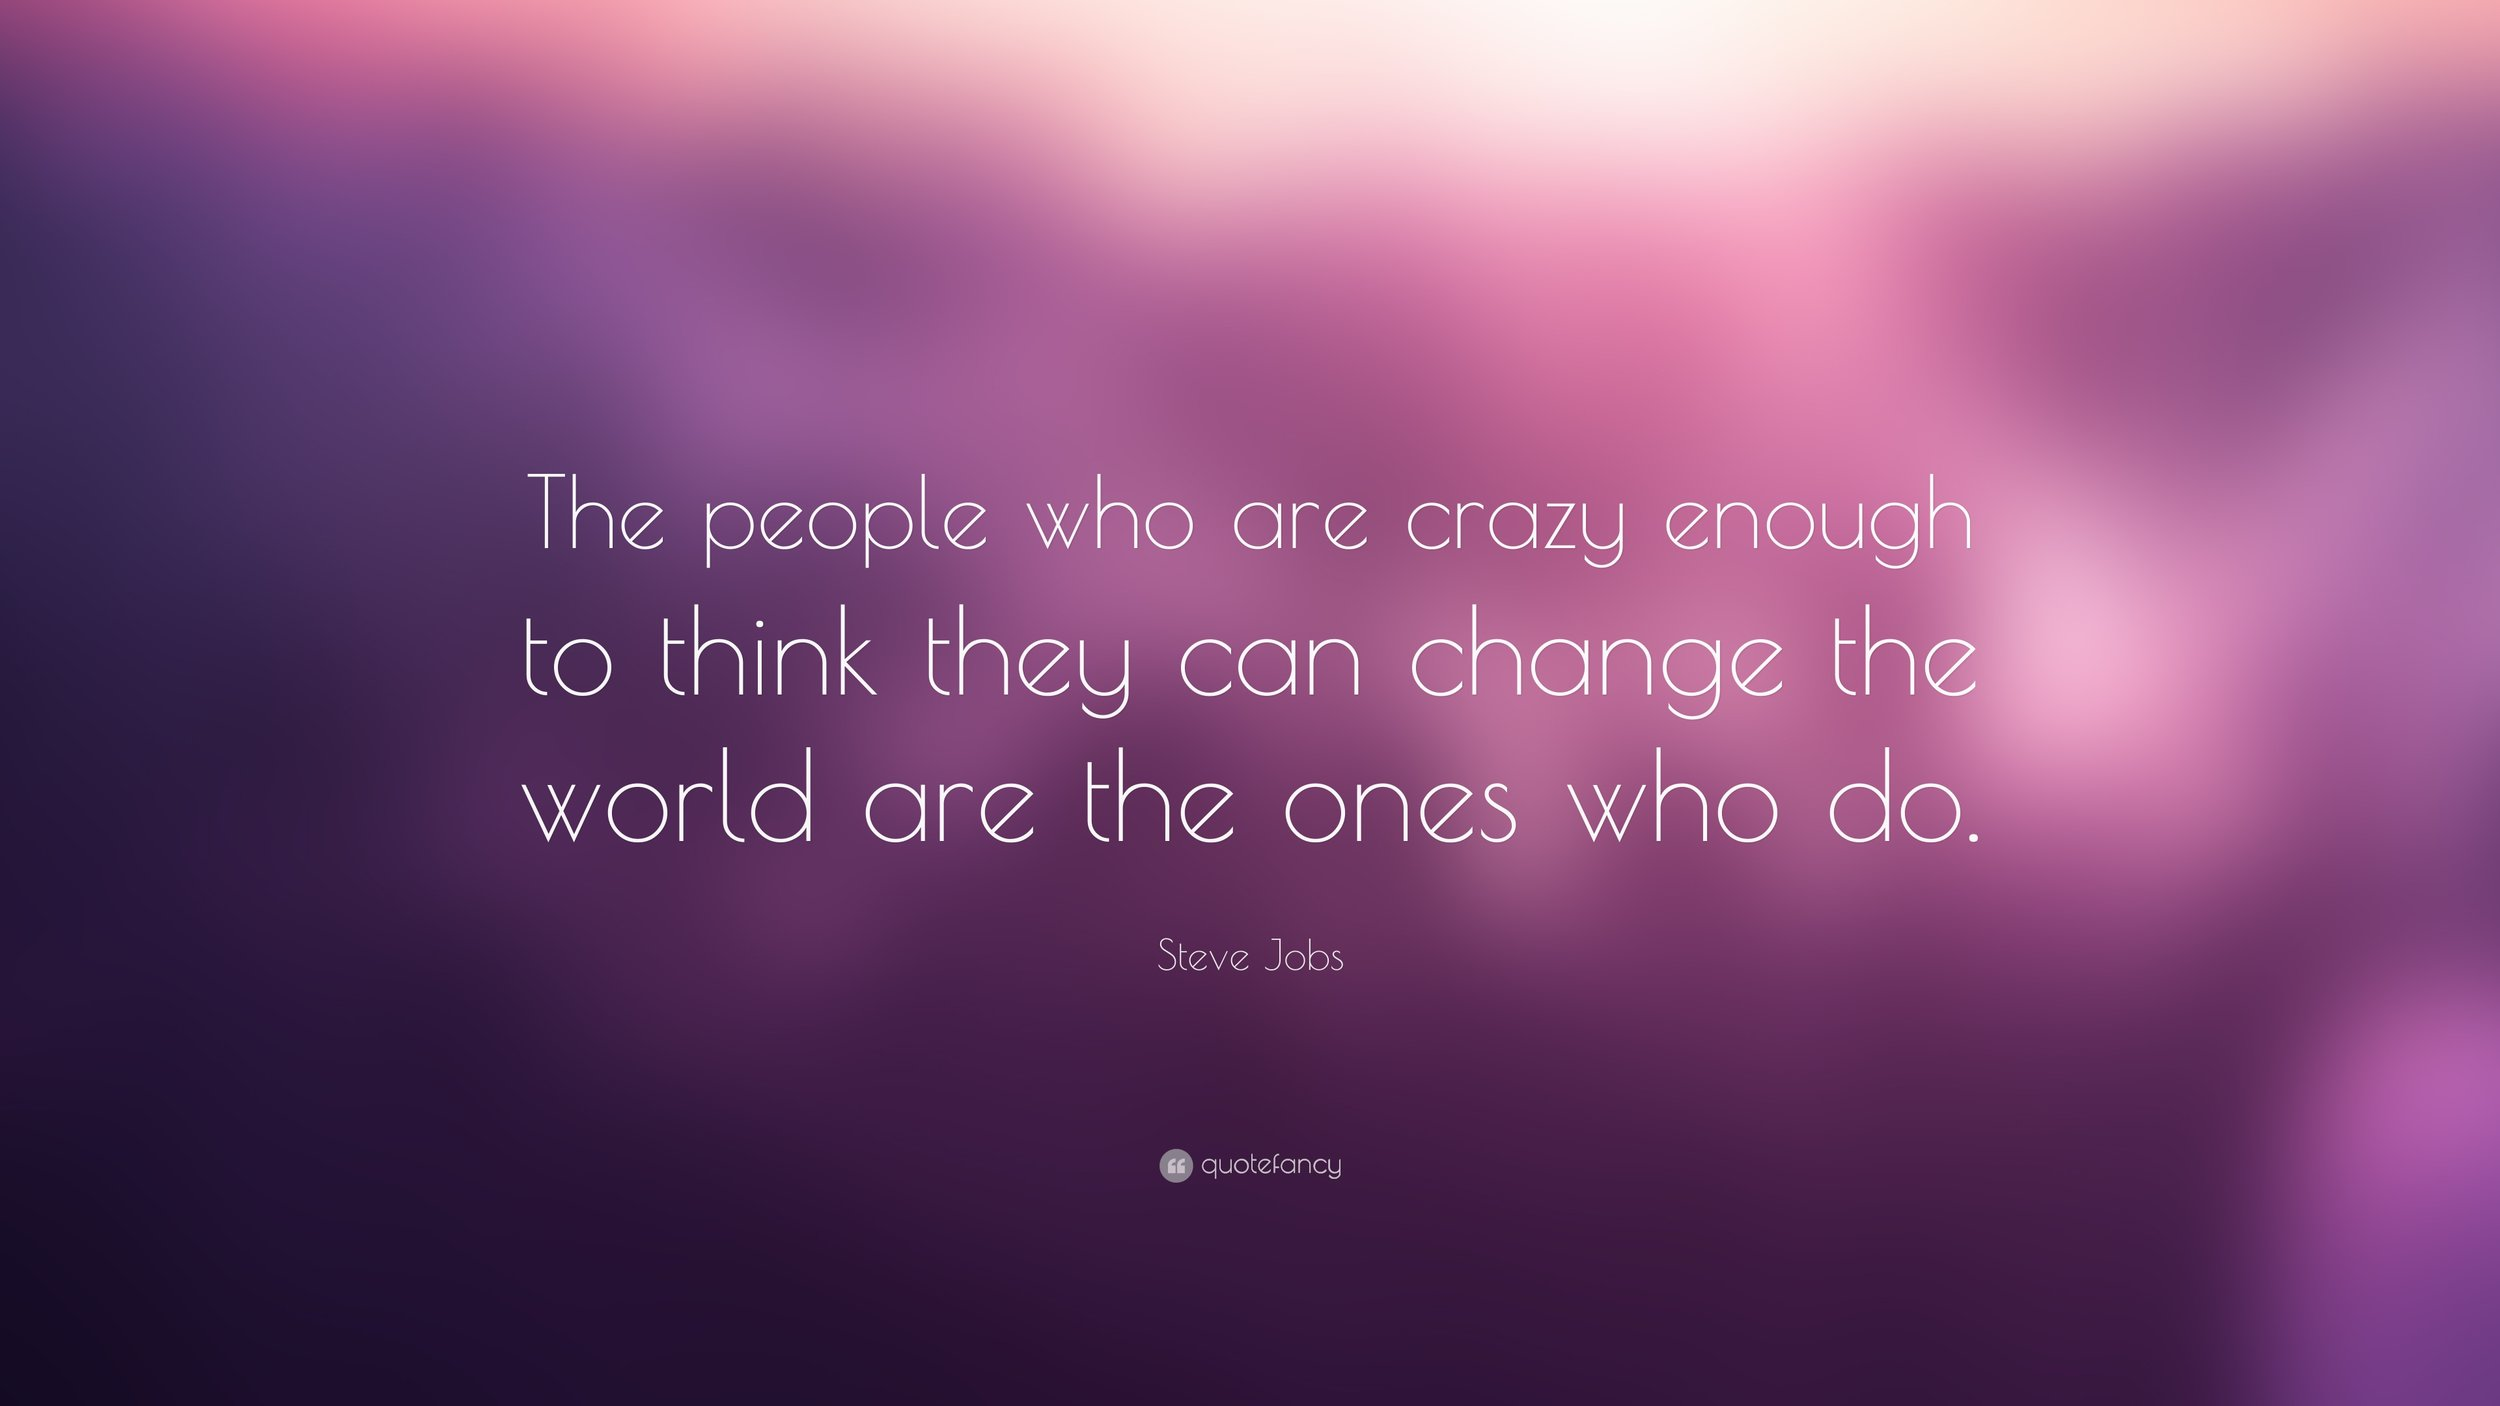 2109-Steve-Jobs-Quote-The-people-who-are-crazy-enough-to-think-they-can.jpg